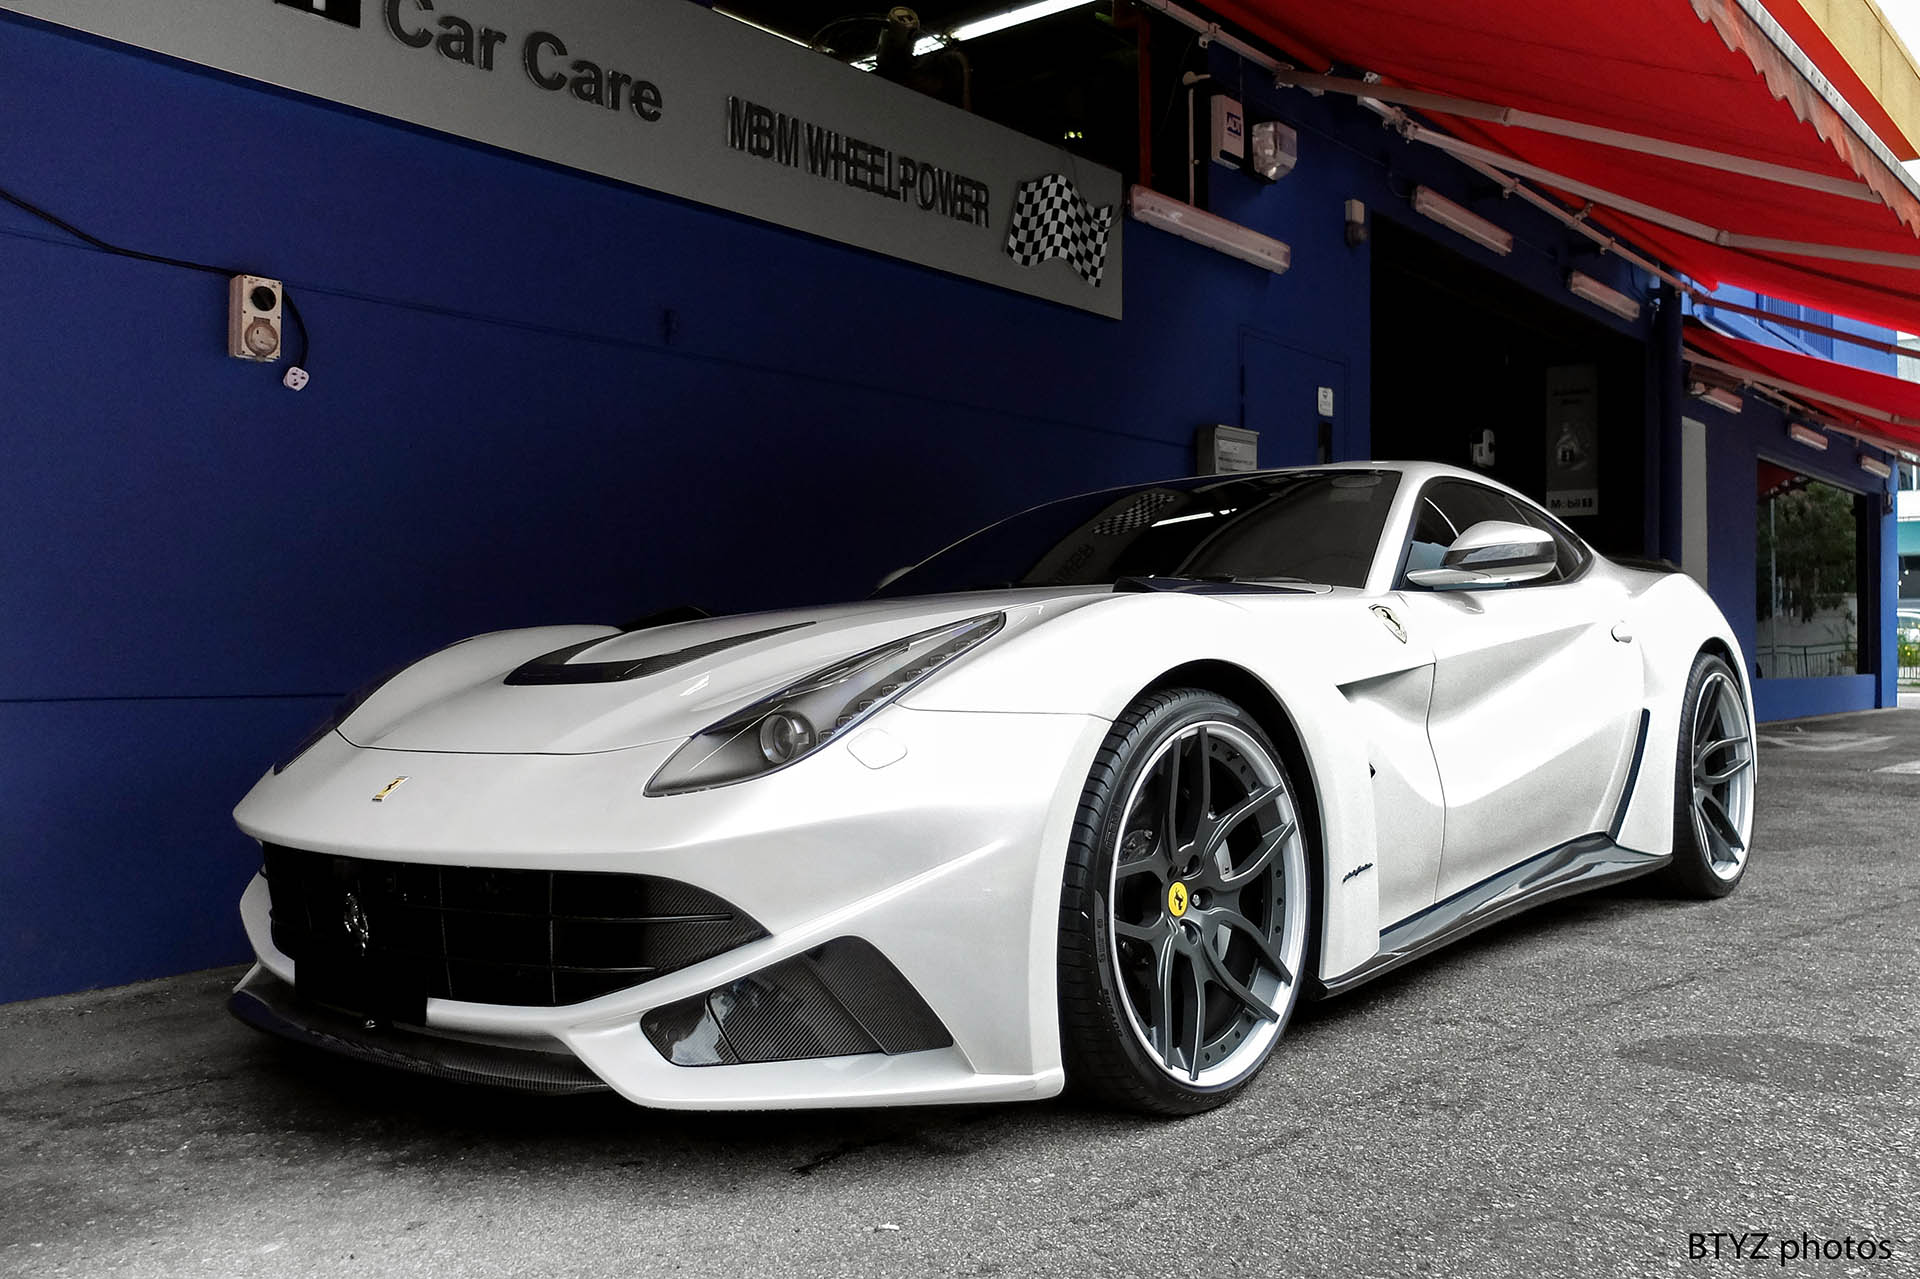 Ferrari F12 Berlinetta Hd Wallpapers High Resolution Download